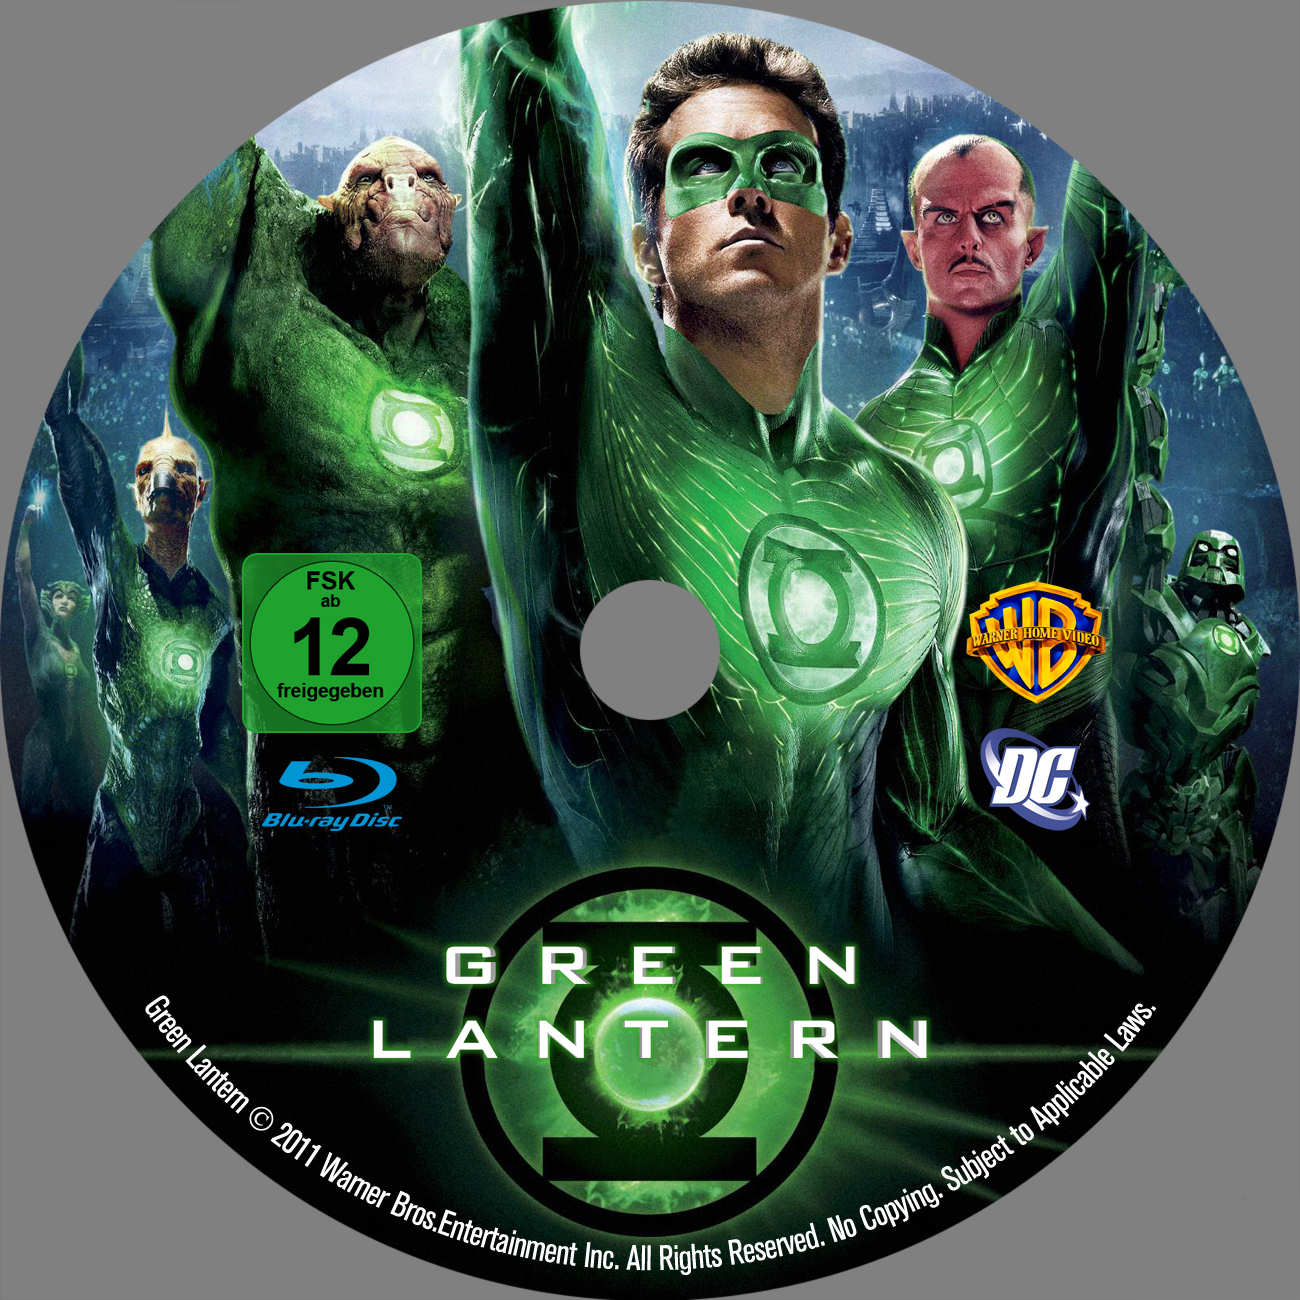 Green lantern dvd cover